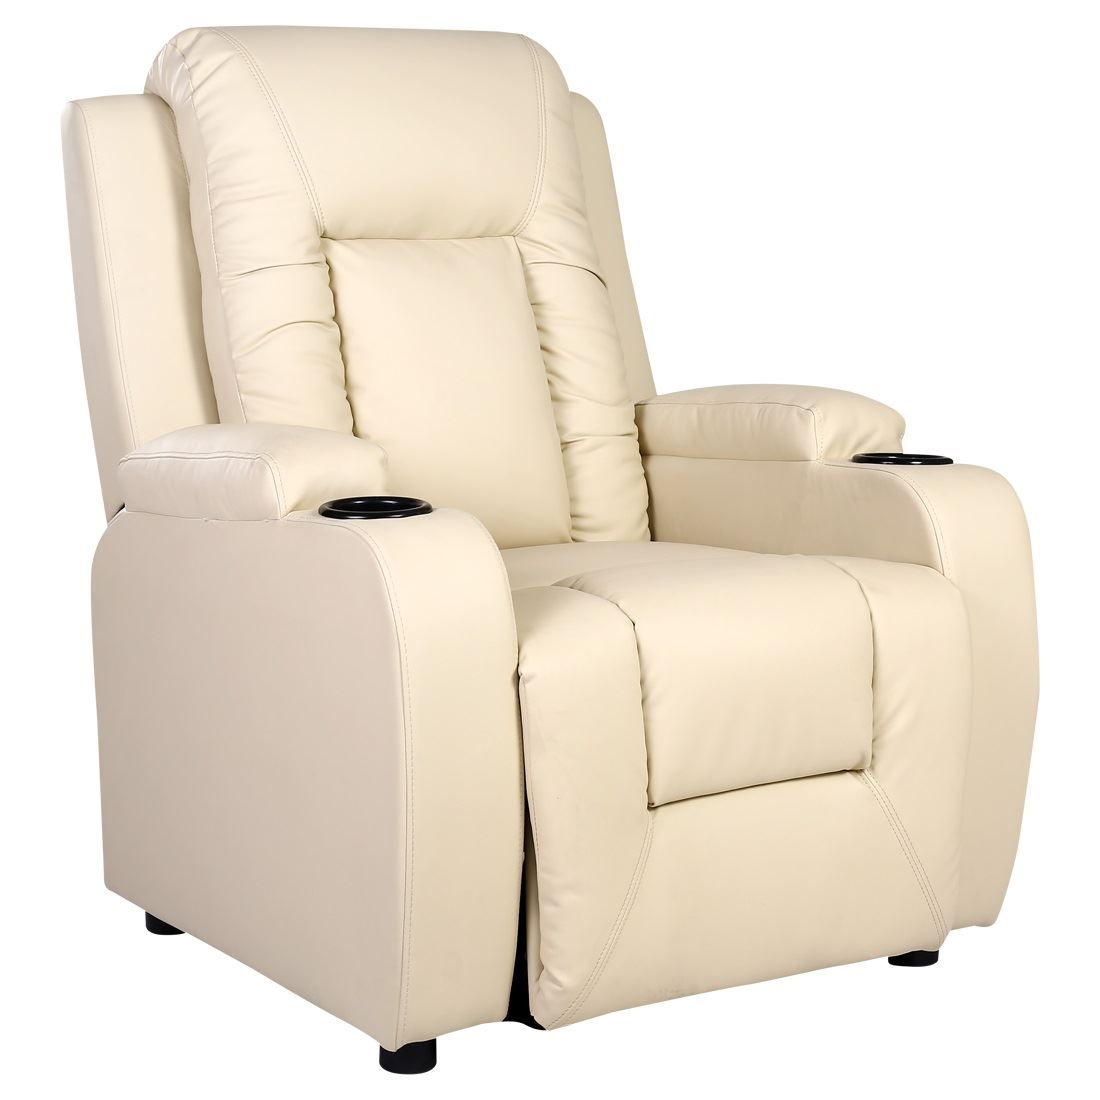 video game chair with cup holder black leather office high back oscar cream recliner w drink holders armchair sofa